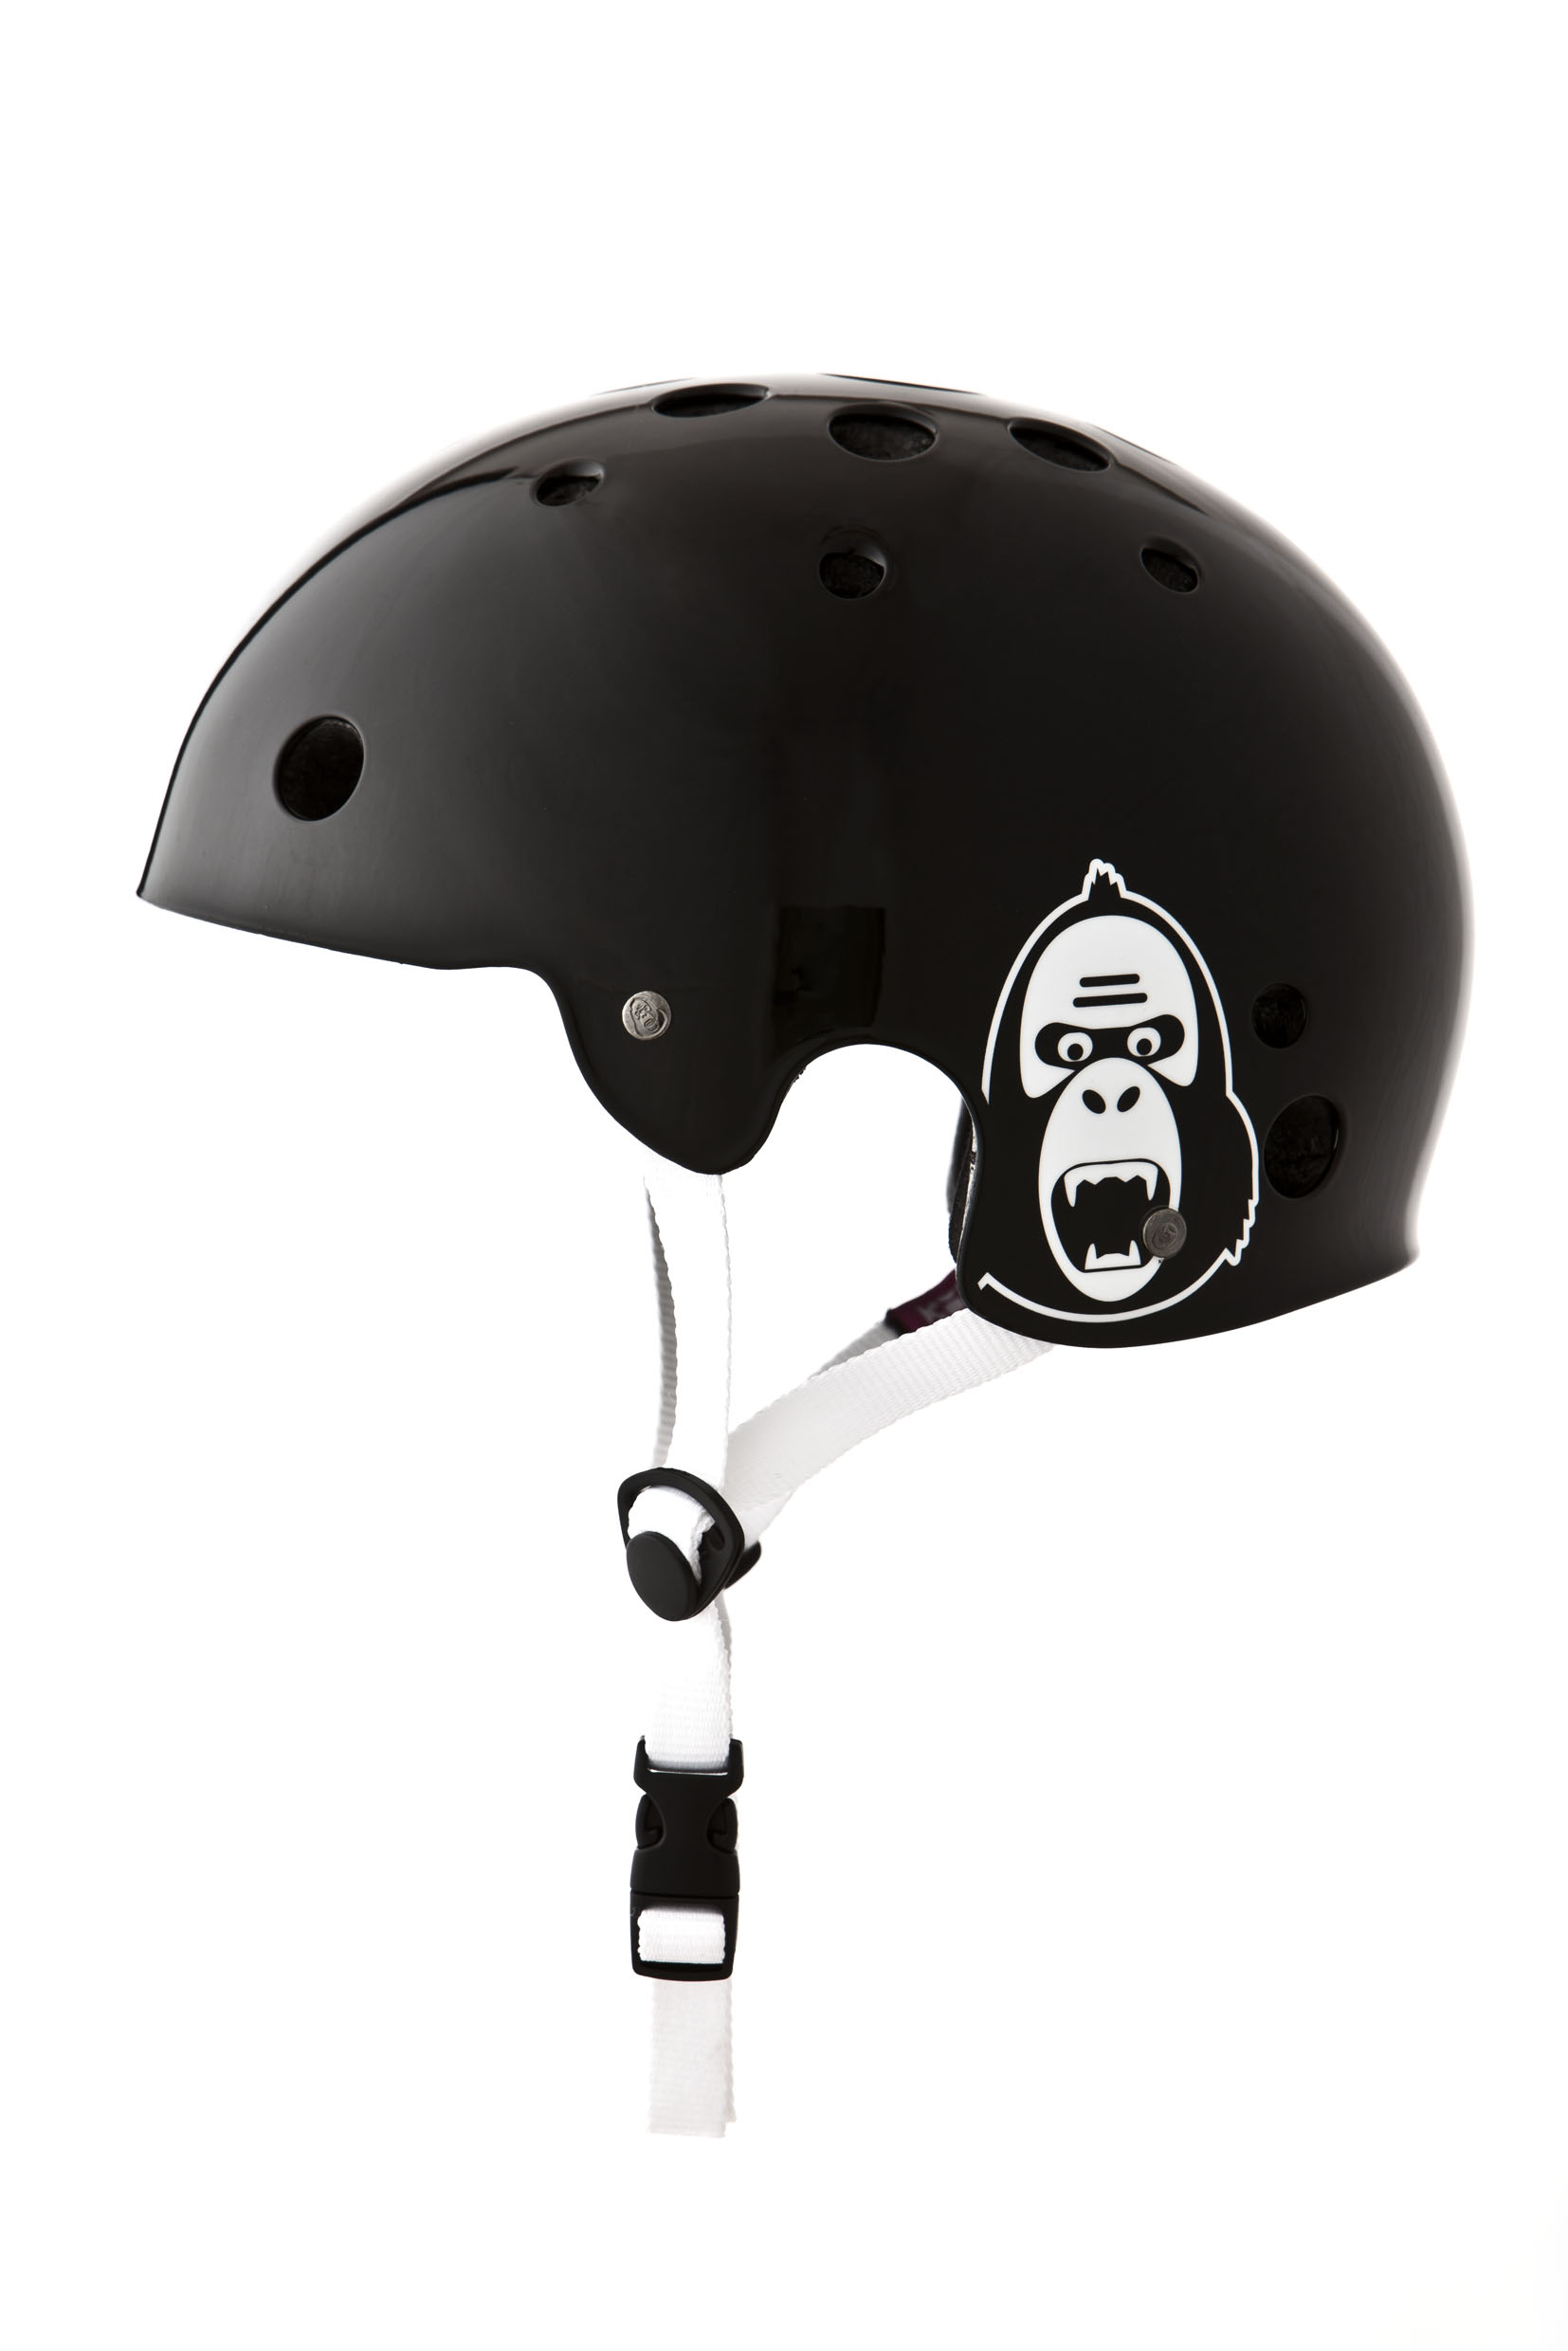 king kong, helm, helmet, open face, integral helm